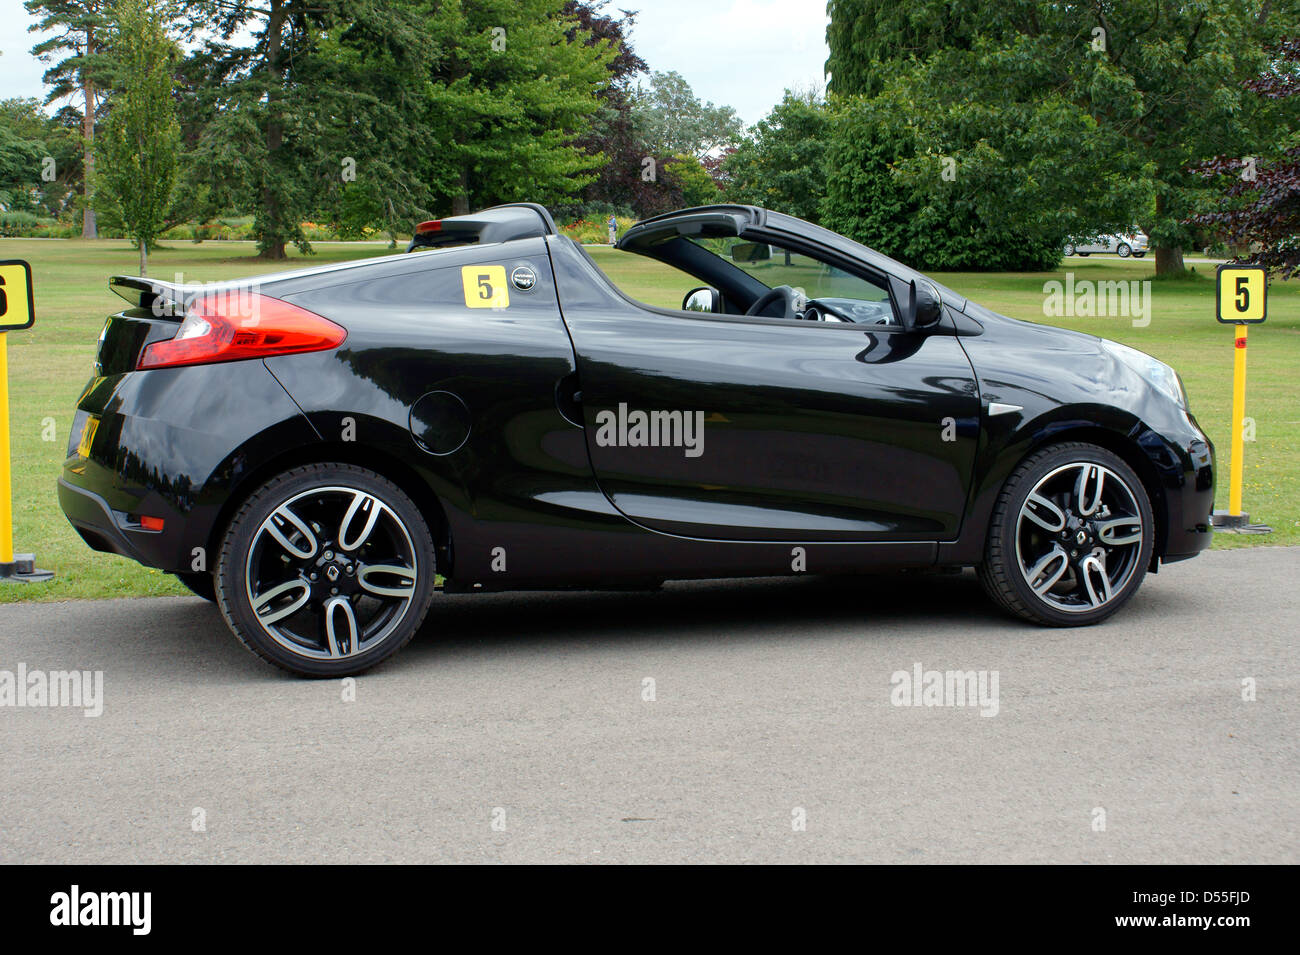 renault wind coupe cabriolet stock photo 54826421 alamy. Black Bedroom Furniture Sets. Home Design Ideas